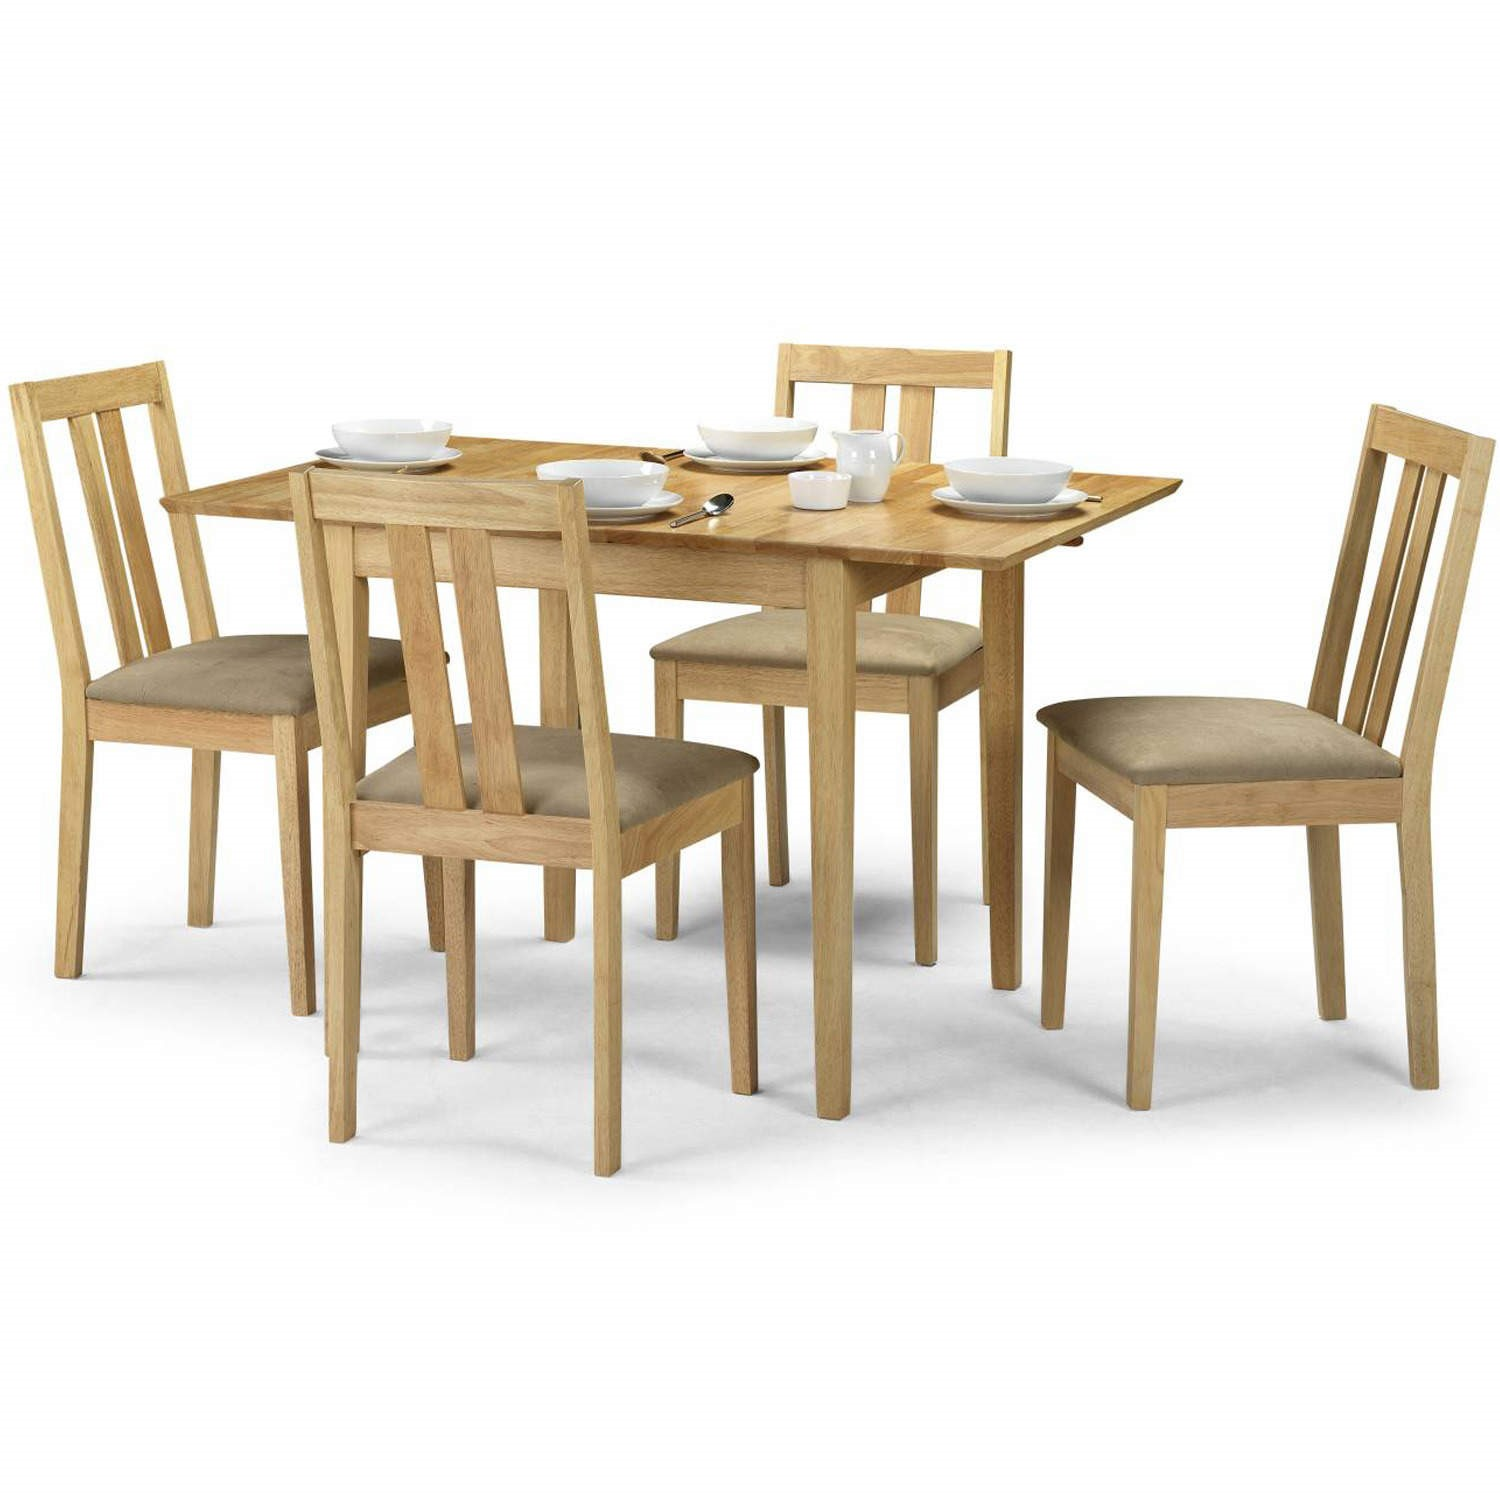 Extending Kitchen Table julian bowen rufford square extending dining table | furniture123